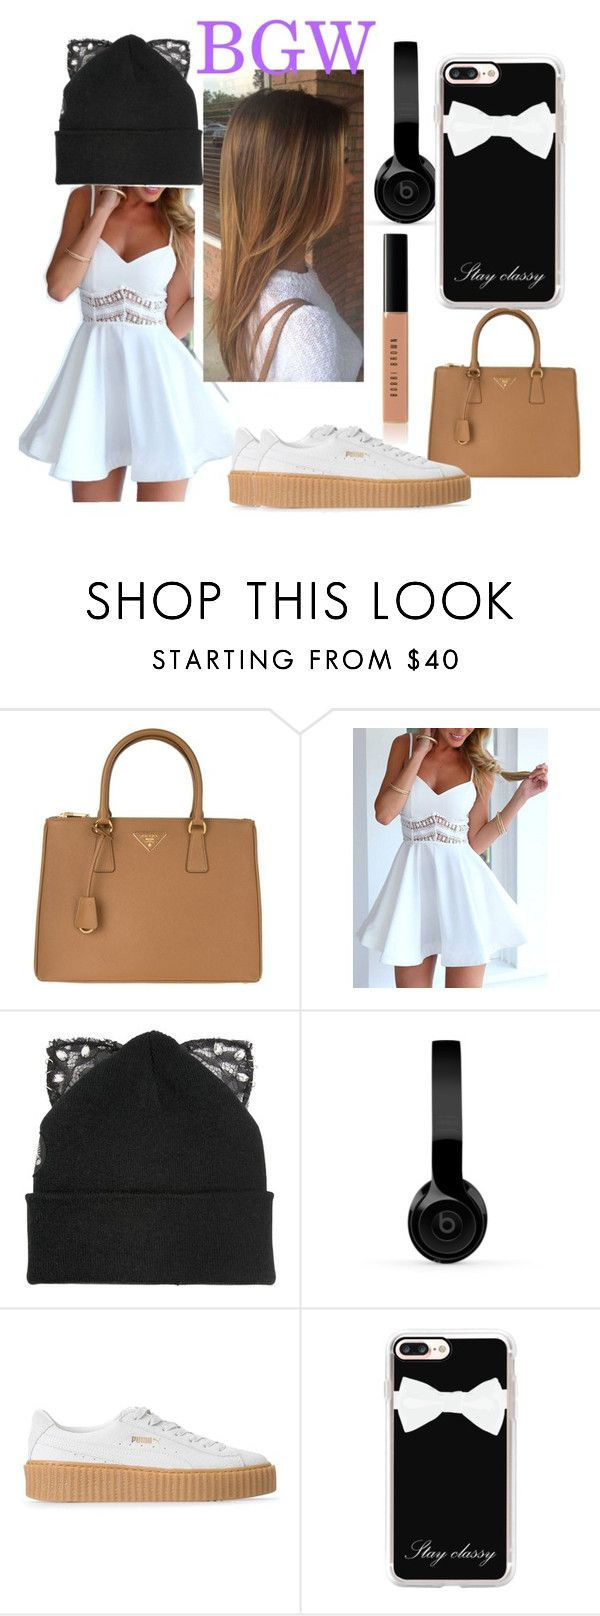 """""""BROWN,GOLD N WHITE"""" by summerun on Polyvore featuring beauty, Prada, Silver Spoon Attire, Beats by Dr. Dre, Puma, Casetify and Bobbi Brown Cosmetics"""